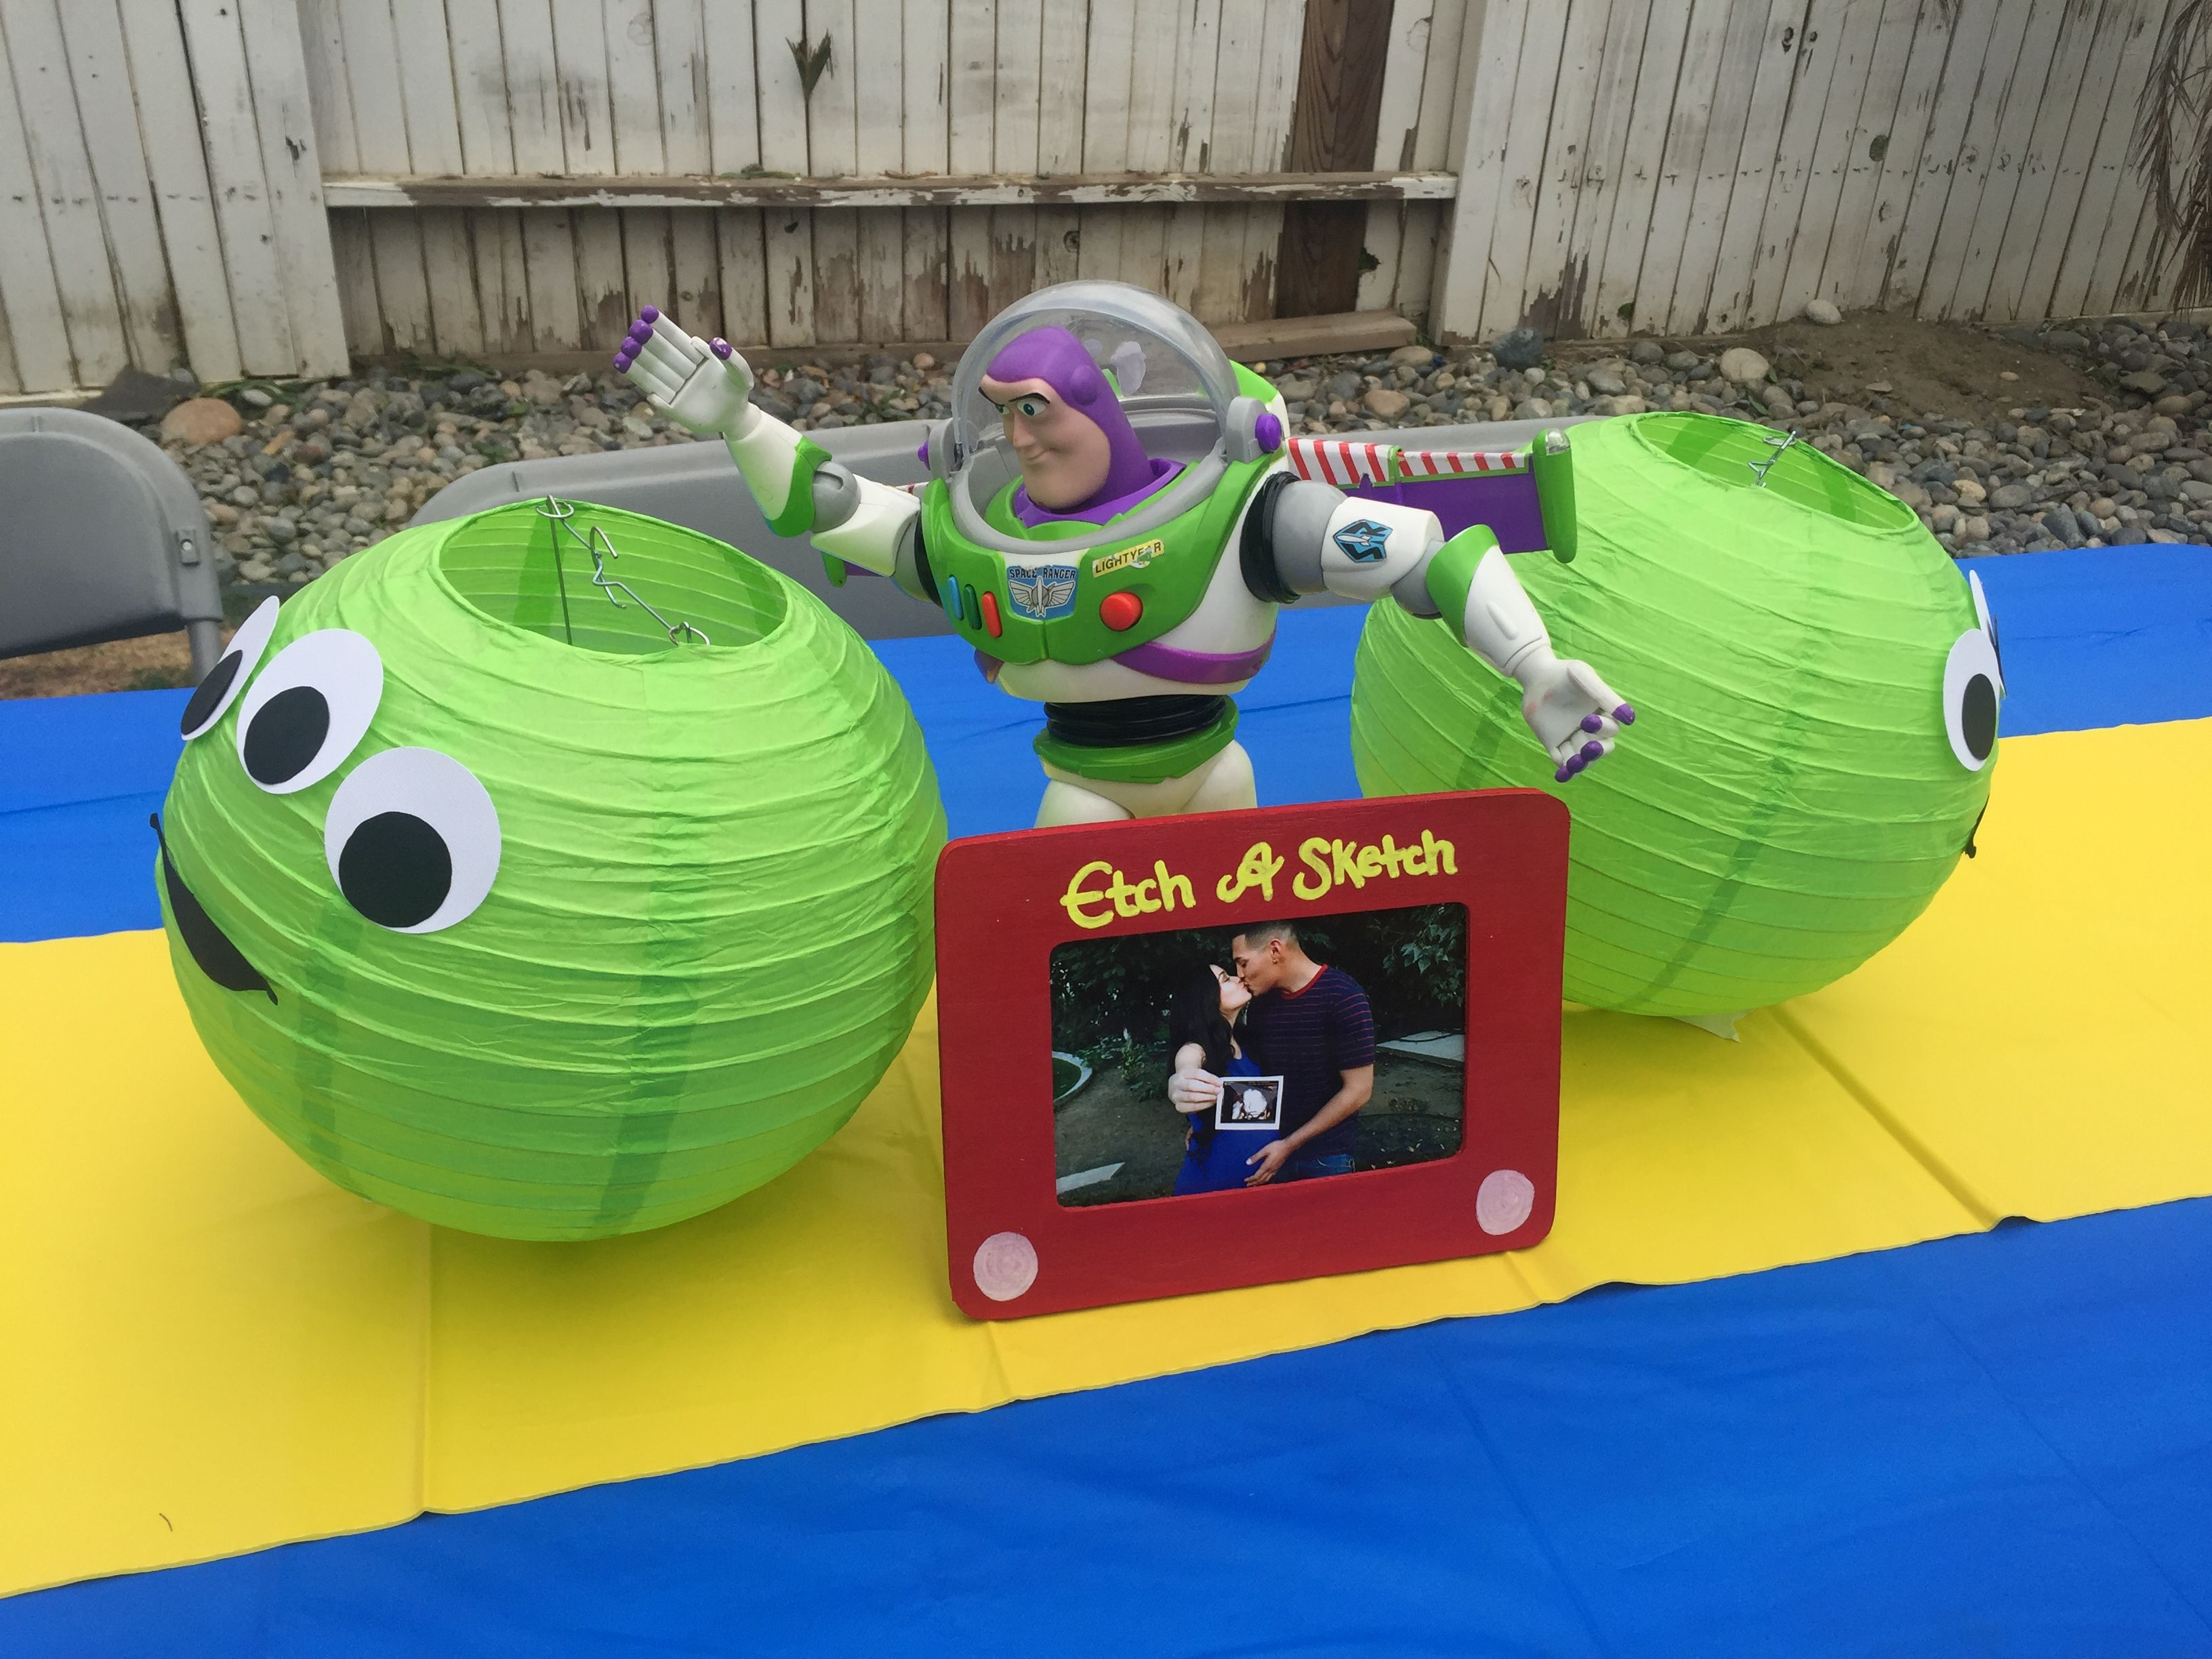 Toy story party ideas birthday in a box - Boy Story Baby Shower Theme Buzz Lightyear Table Centerpiece Toy Story Birthdaytoy Story Party3rd